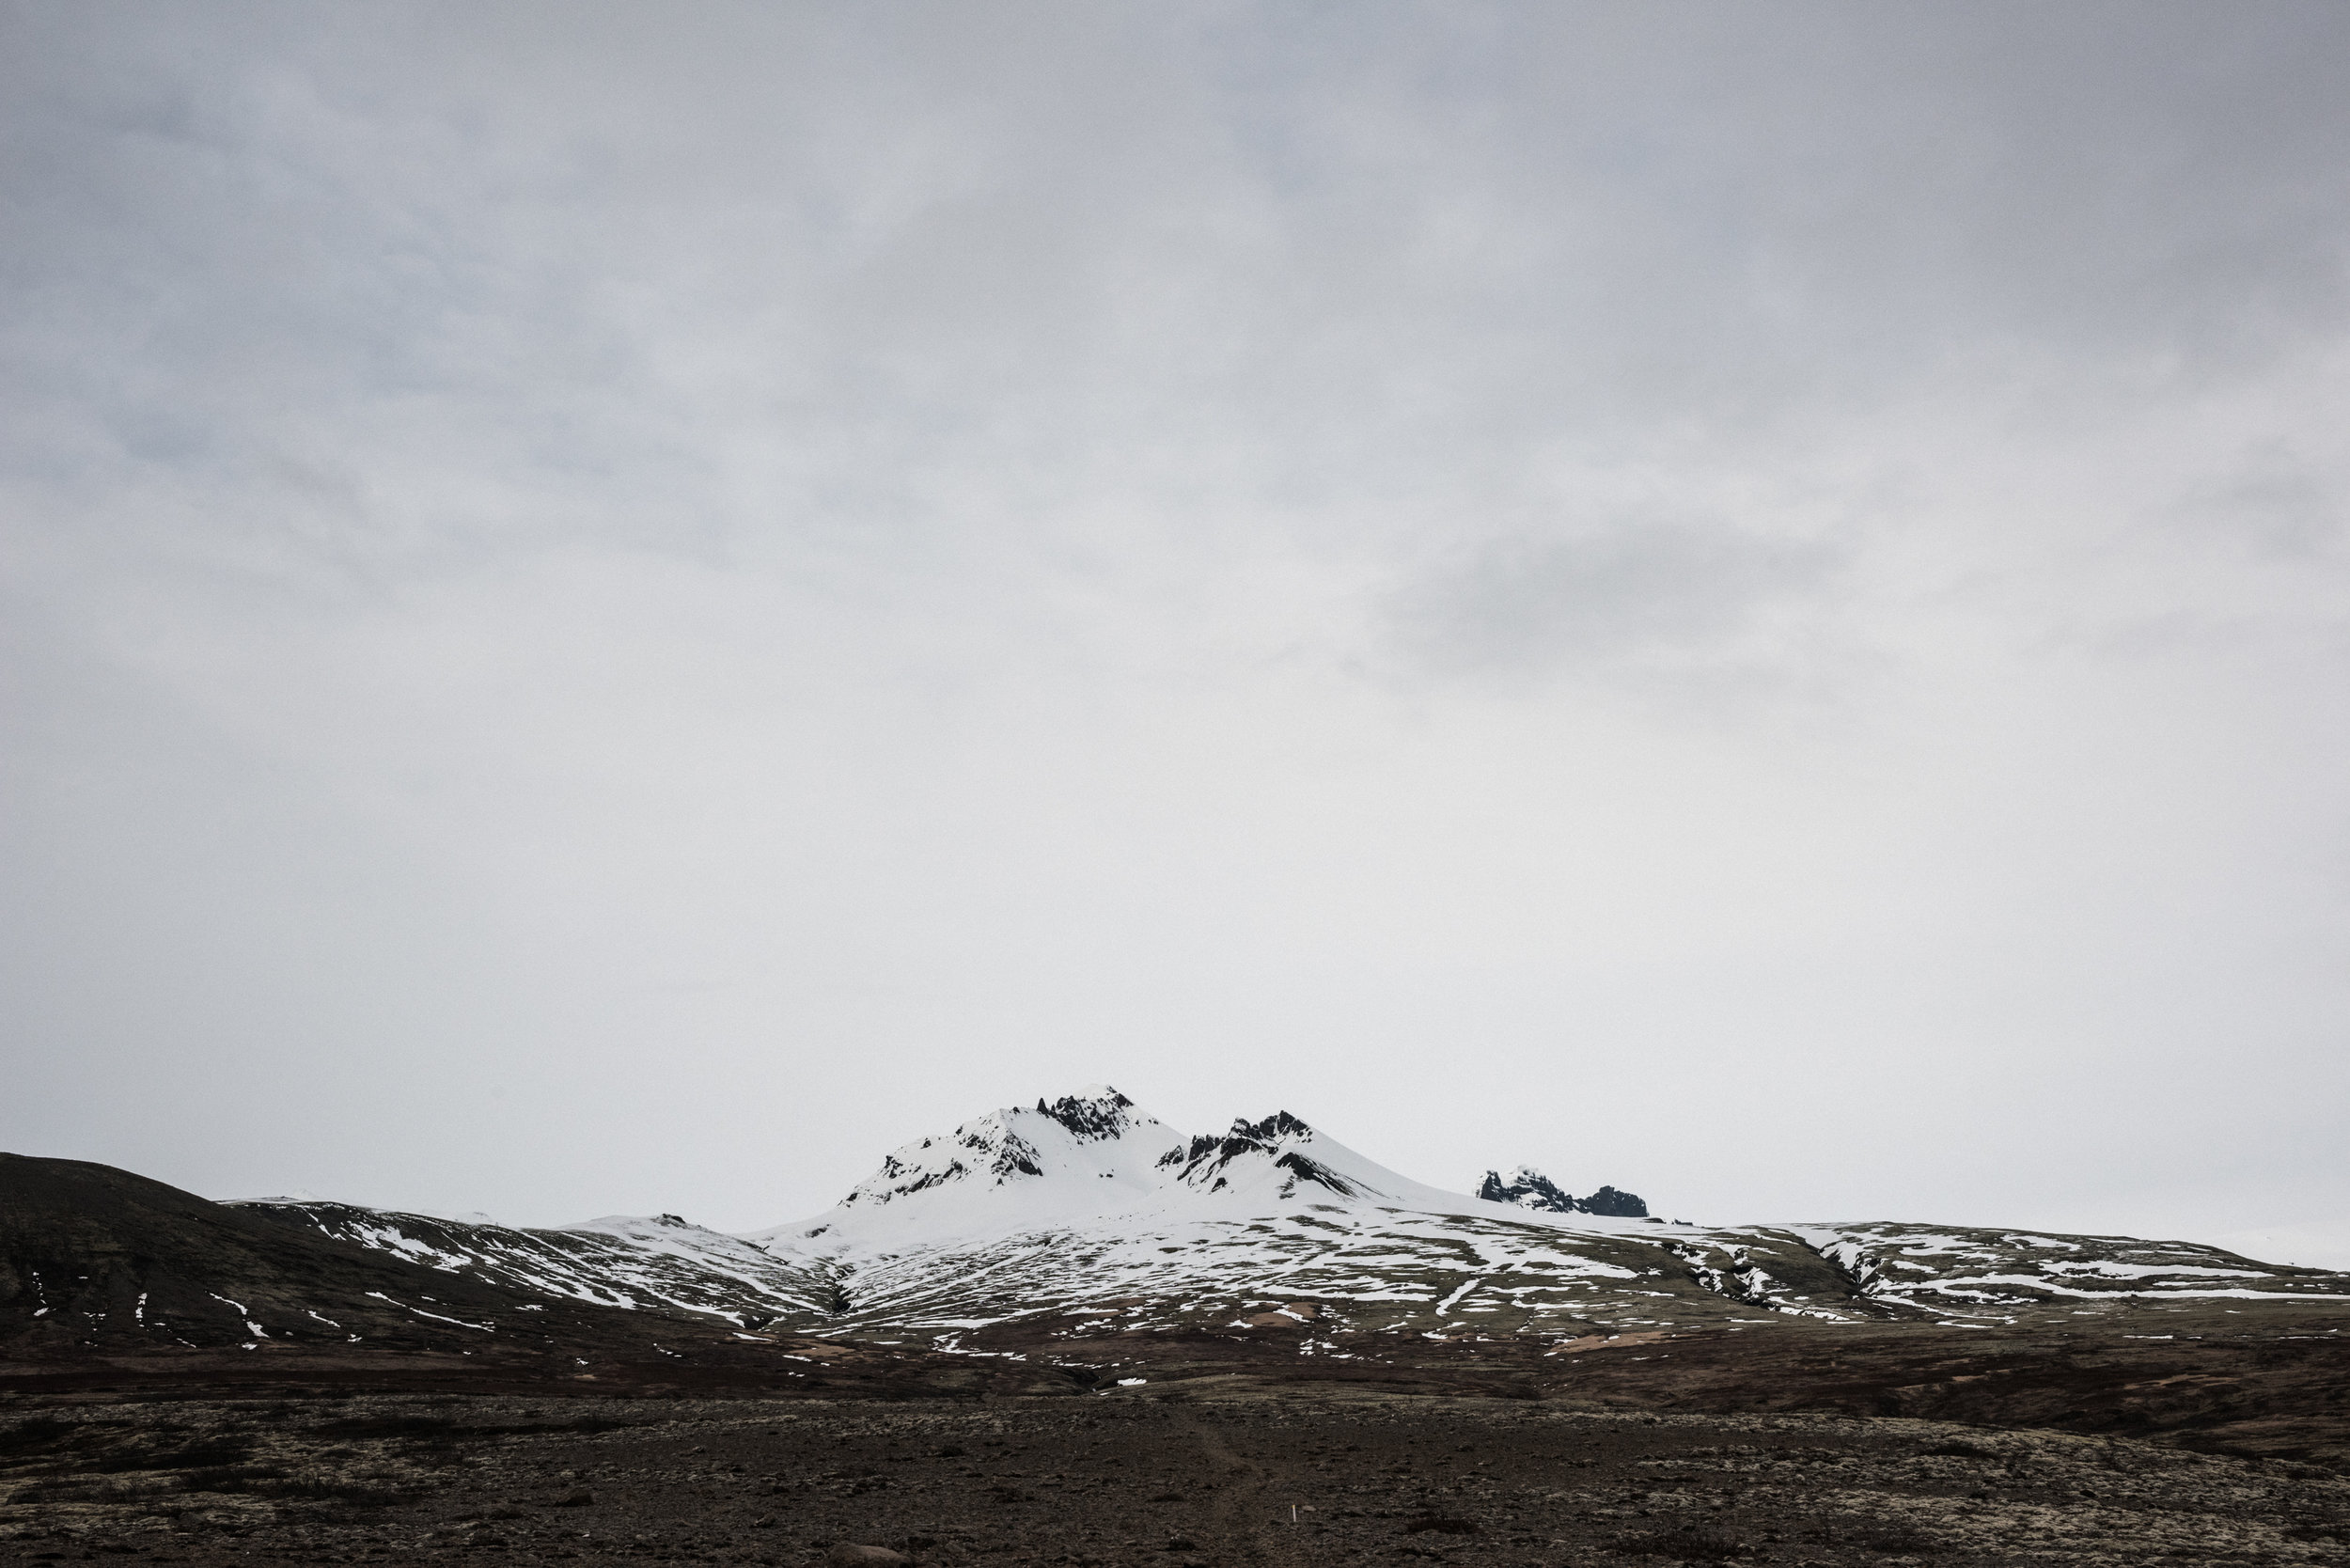 ICELAND_WOMAN_PHOTOGRAPHER_TARASHUPE_OUTDOOR_PHOTOGRAPHY_122.jpg